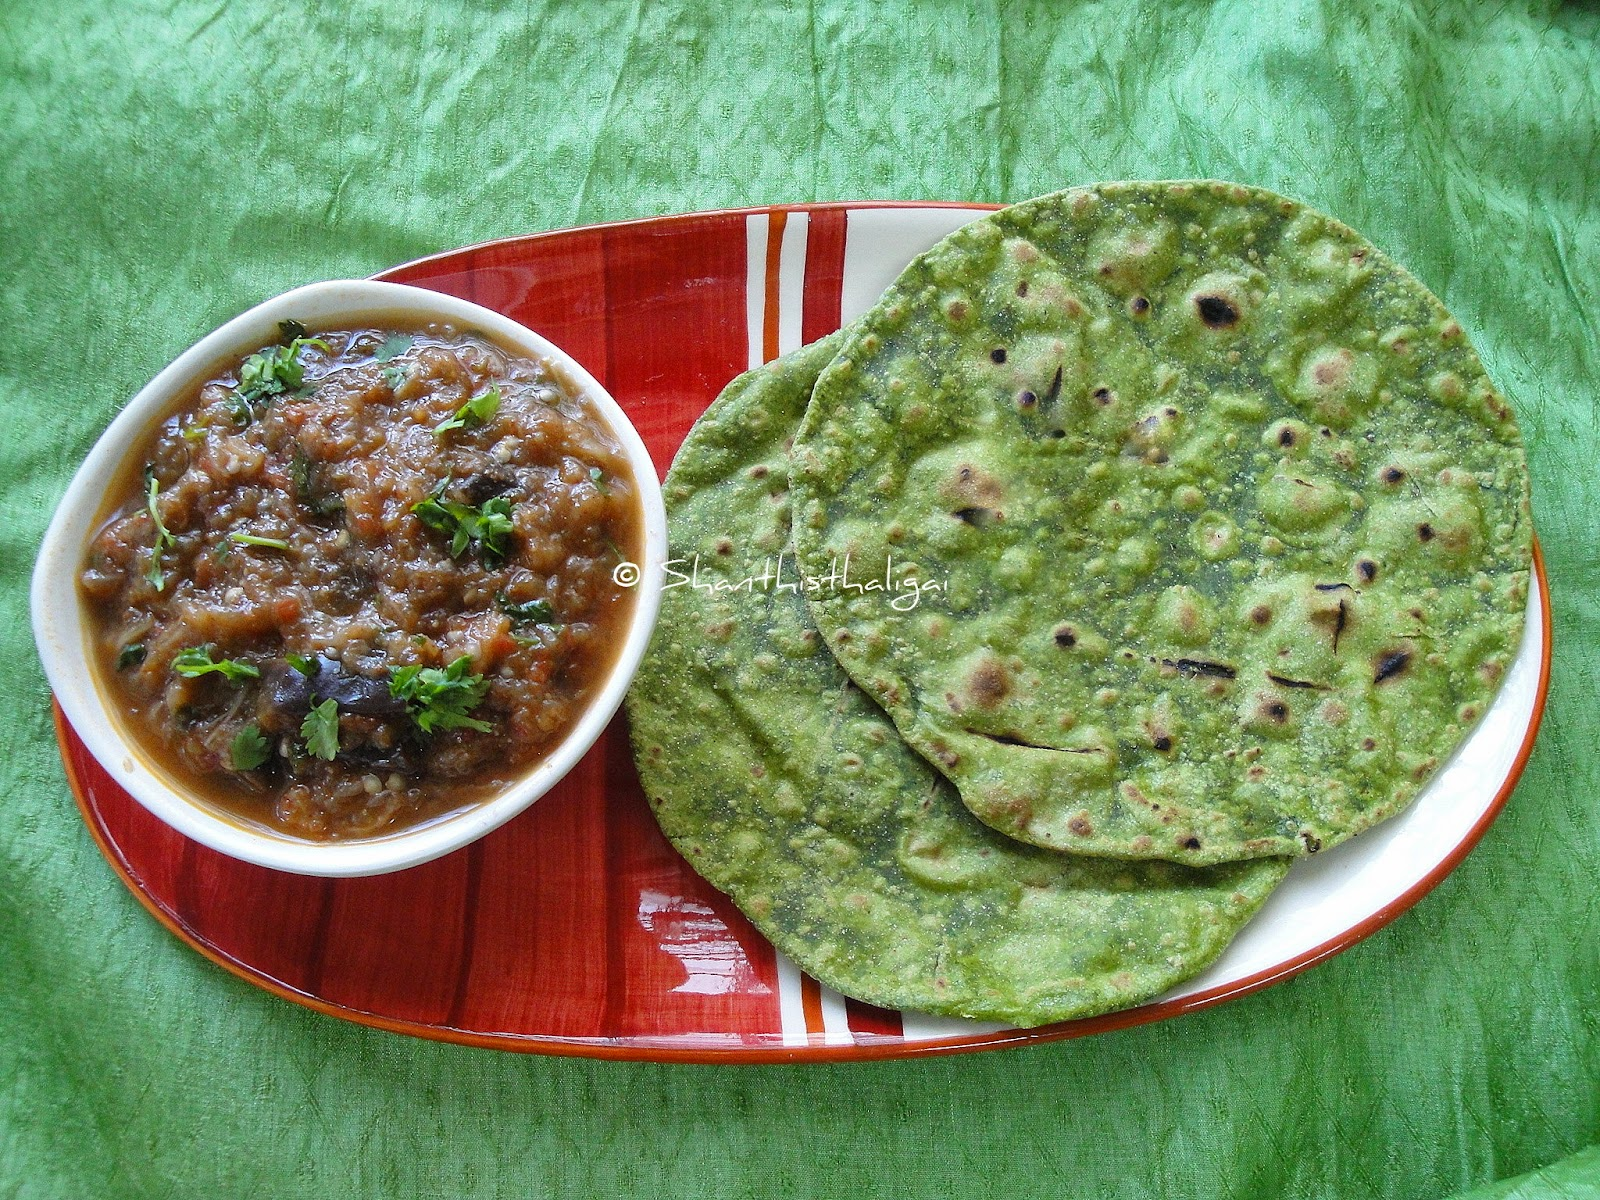 HOW TO MAKE PALAK PHULKA / HOW TO MAKE SOFT PALAK PHULKA